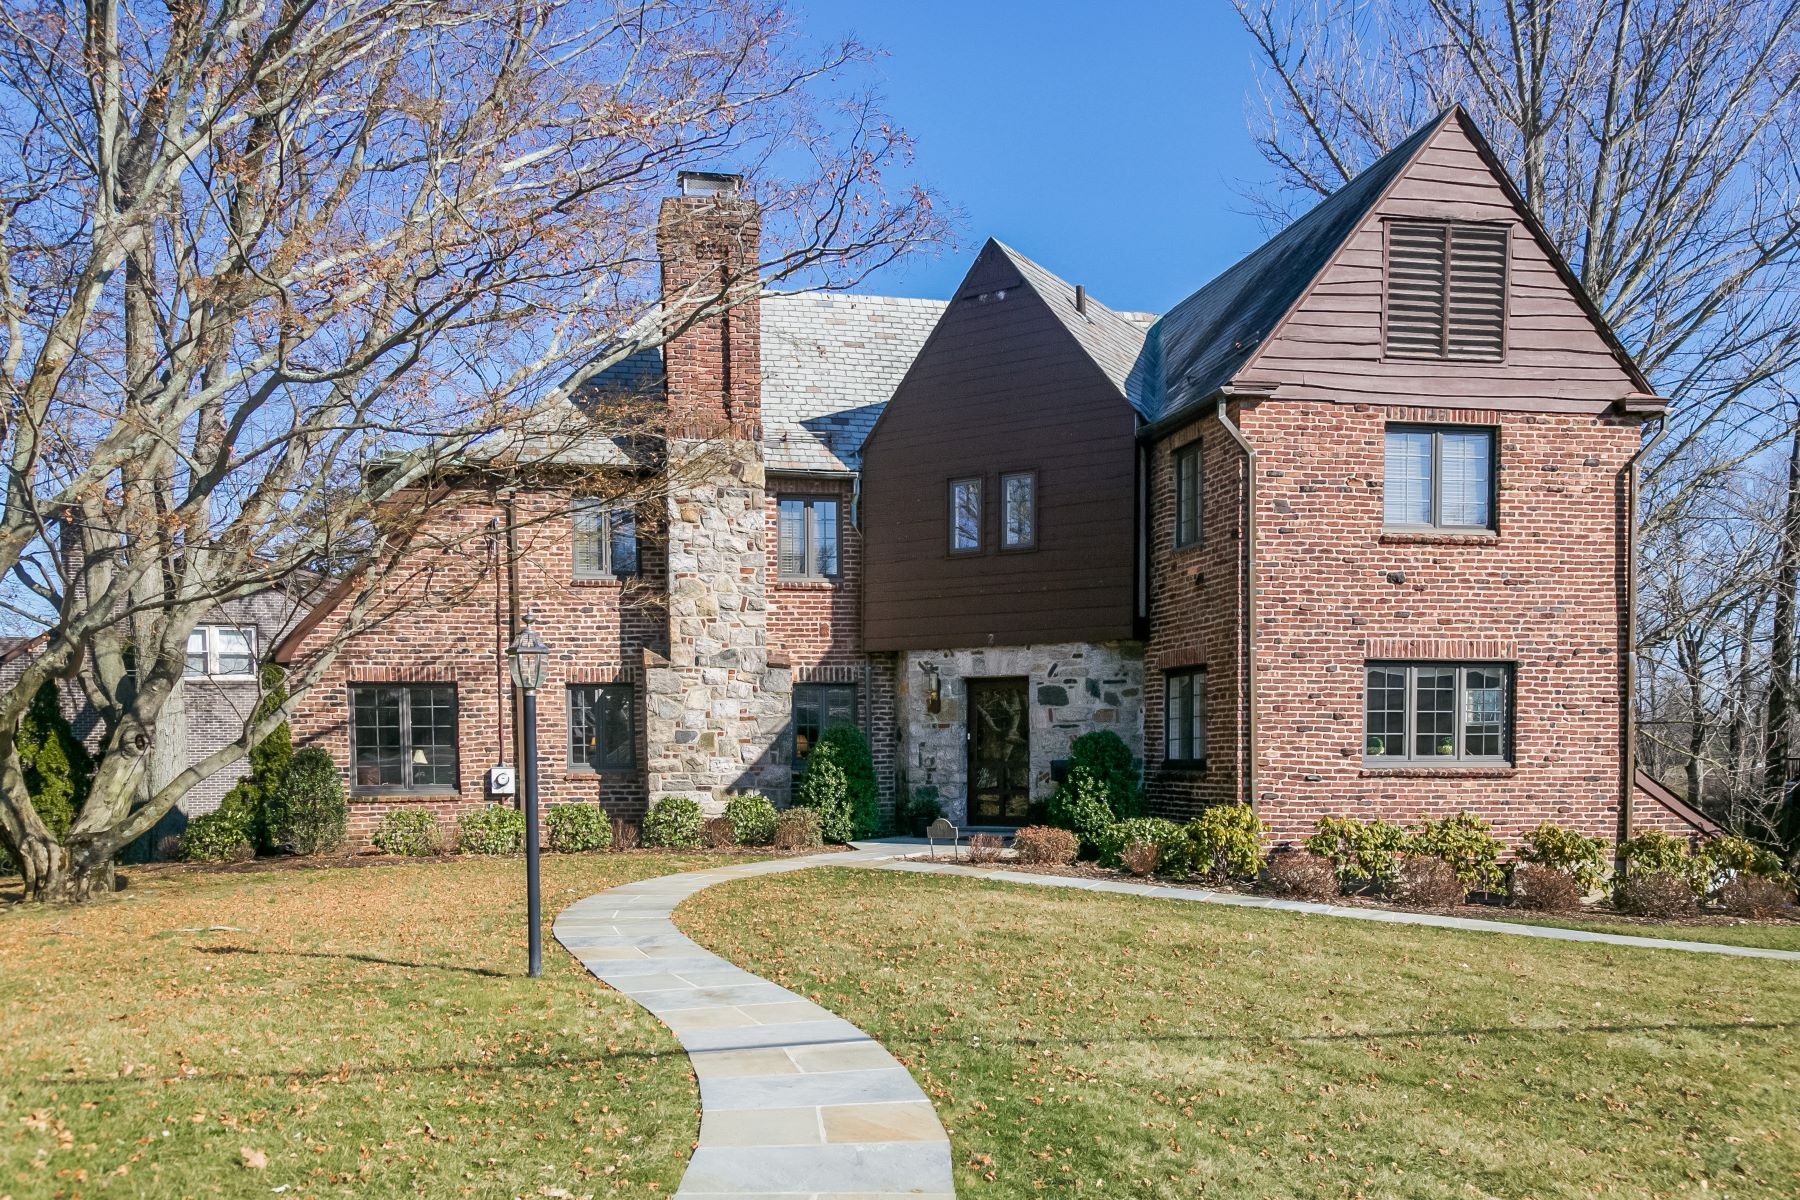 Single Family Home for Sale at Stunning Brick & Stone Tudor in White Plains 2 Fairway Drive, White Plains, New York, 10605 United States